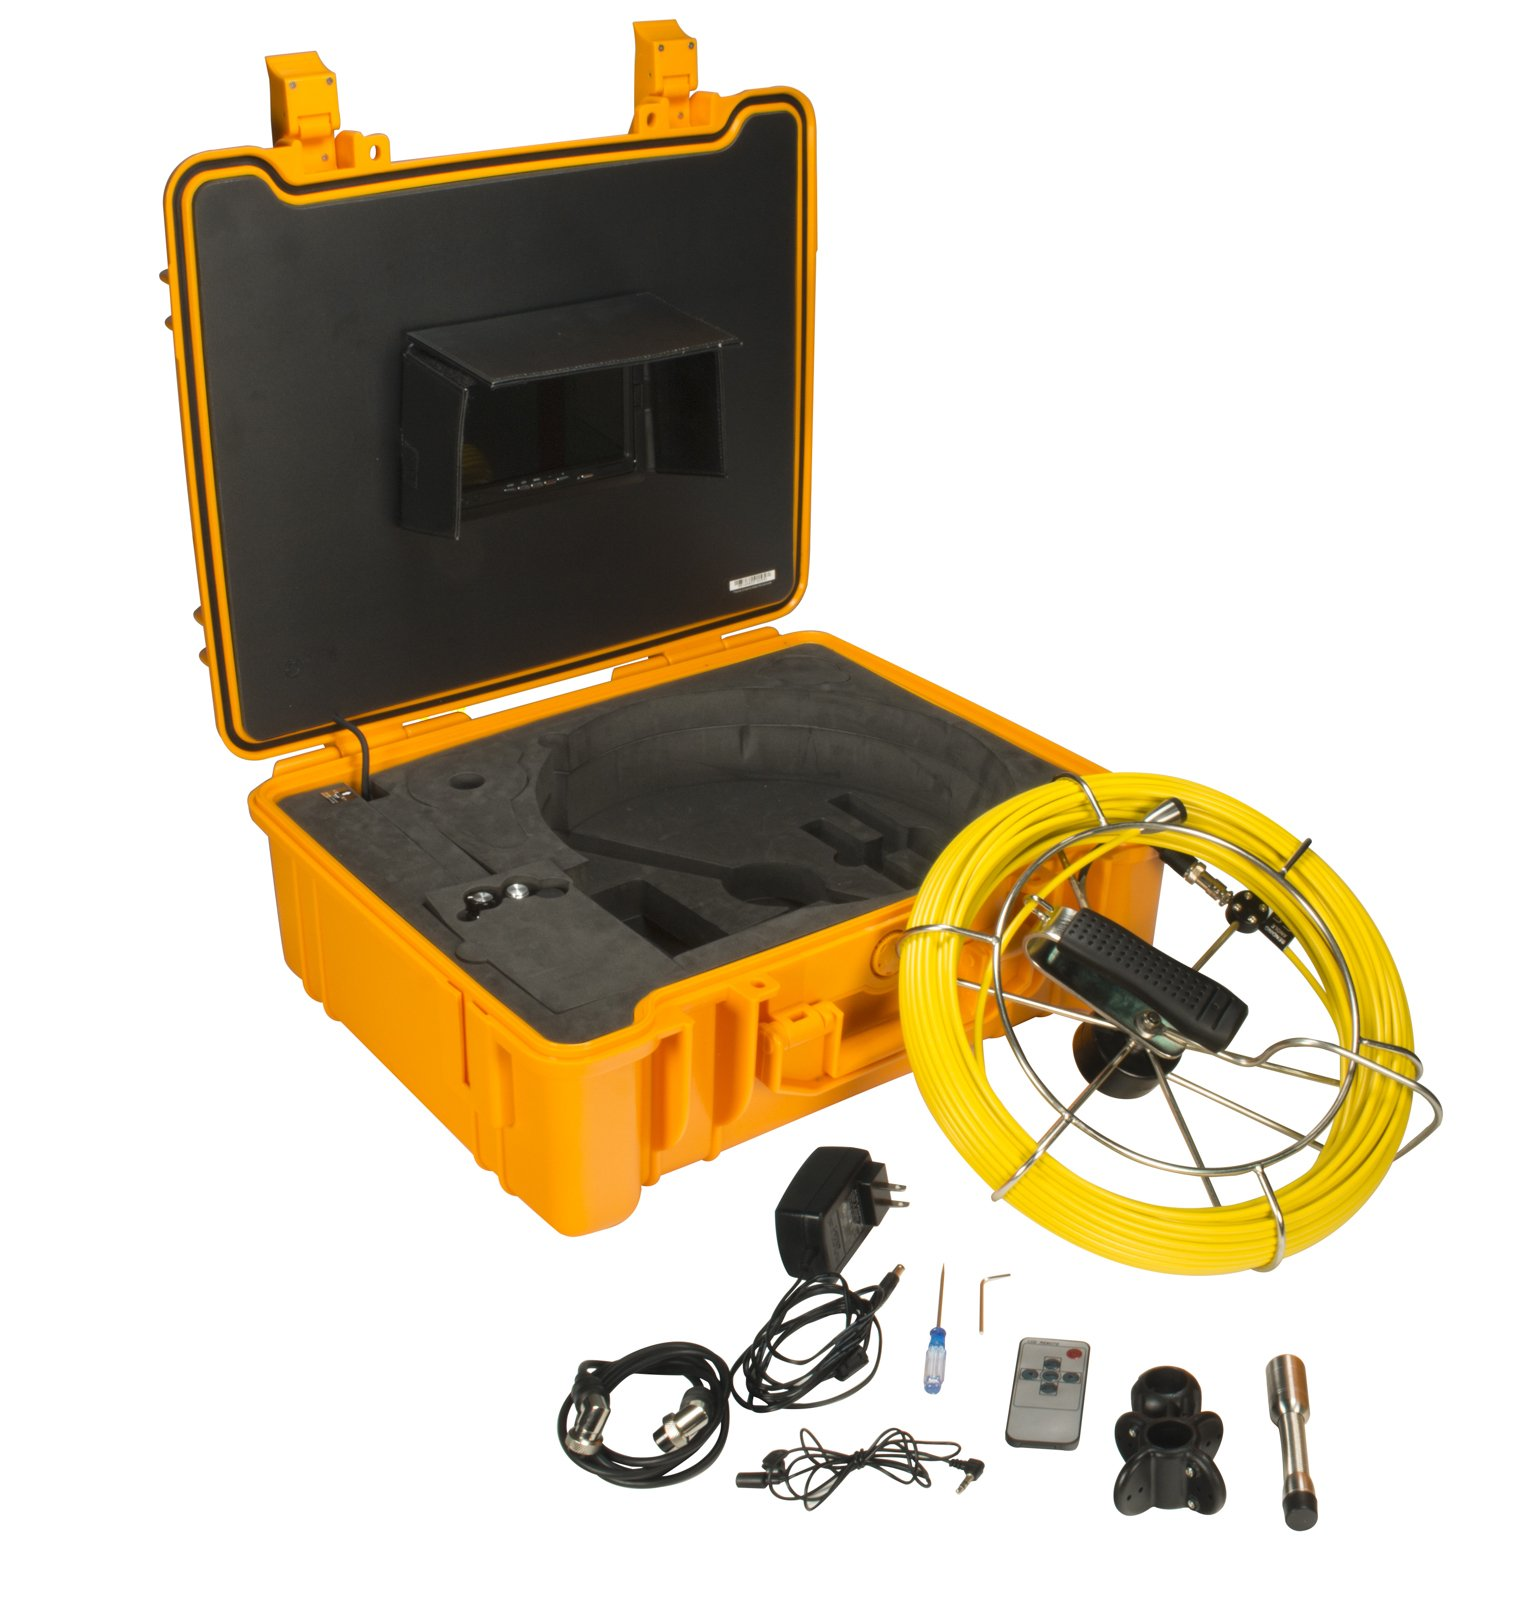 Steel Dragon Tools Model 710DN Pipe Inspection Camera with DVR and 130 FT Cable by Steel Dragon Tools